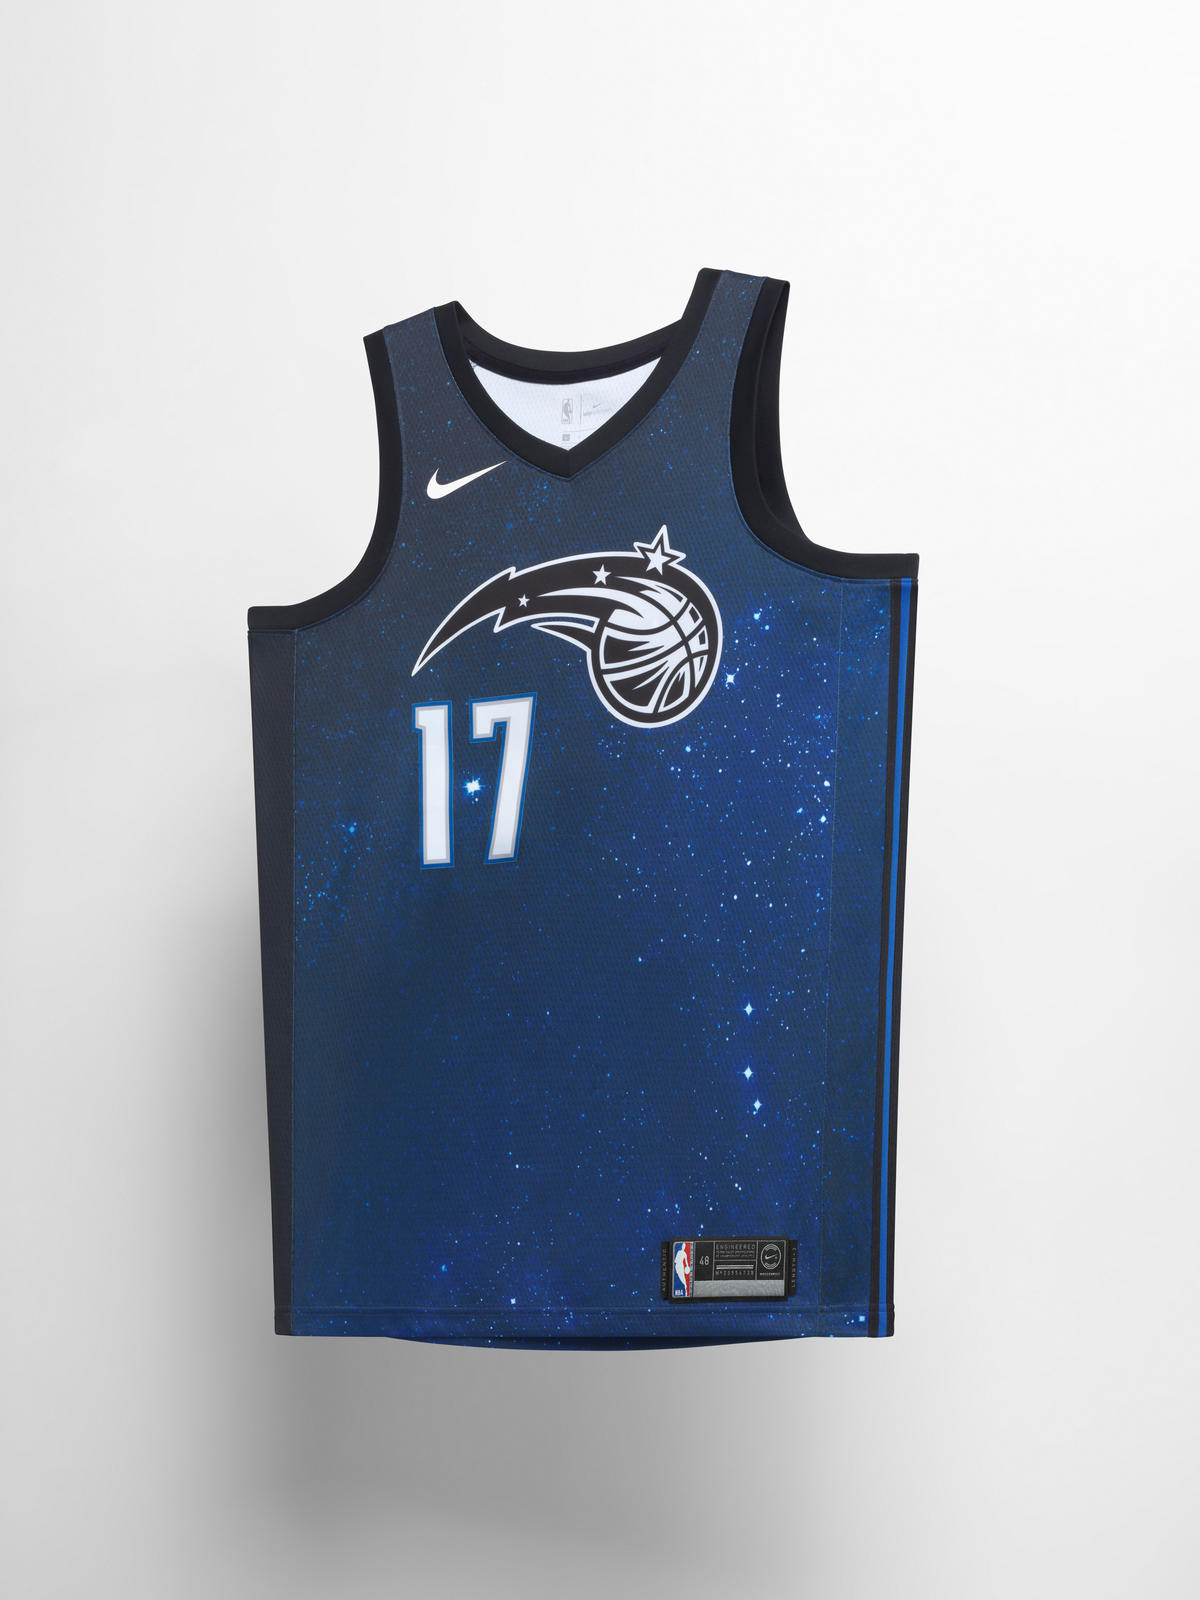 Orlando Magic City Edition jersey